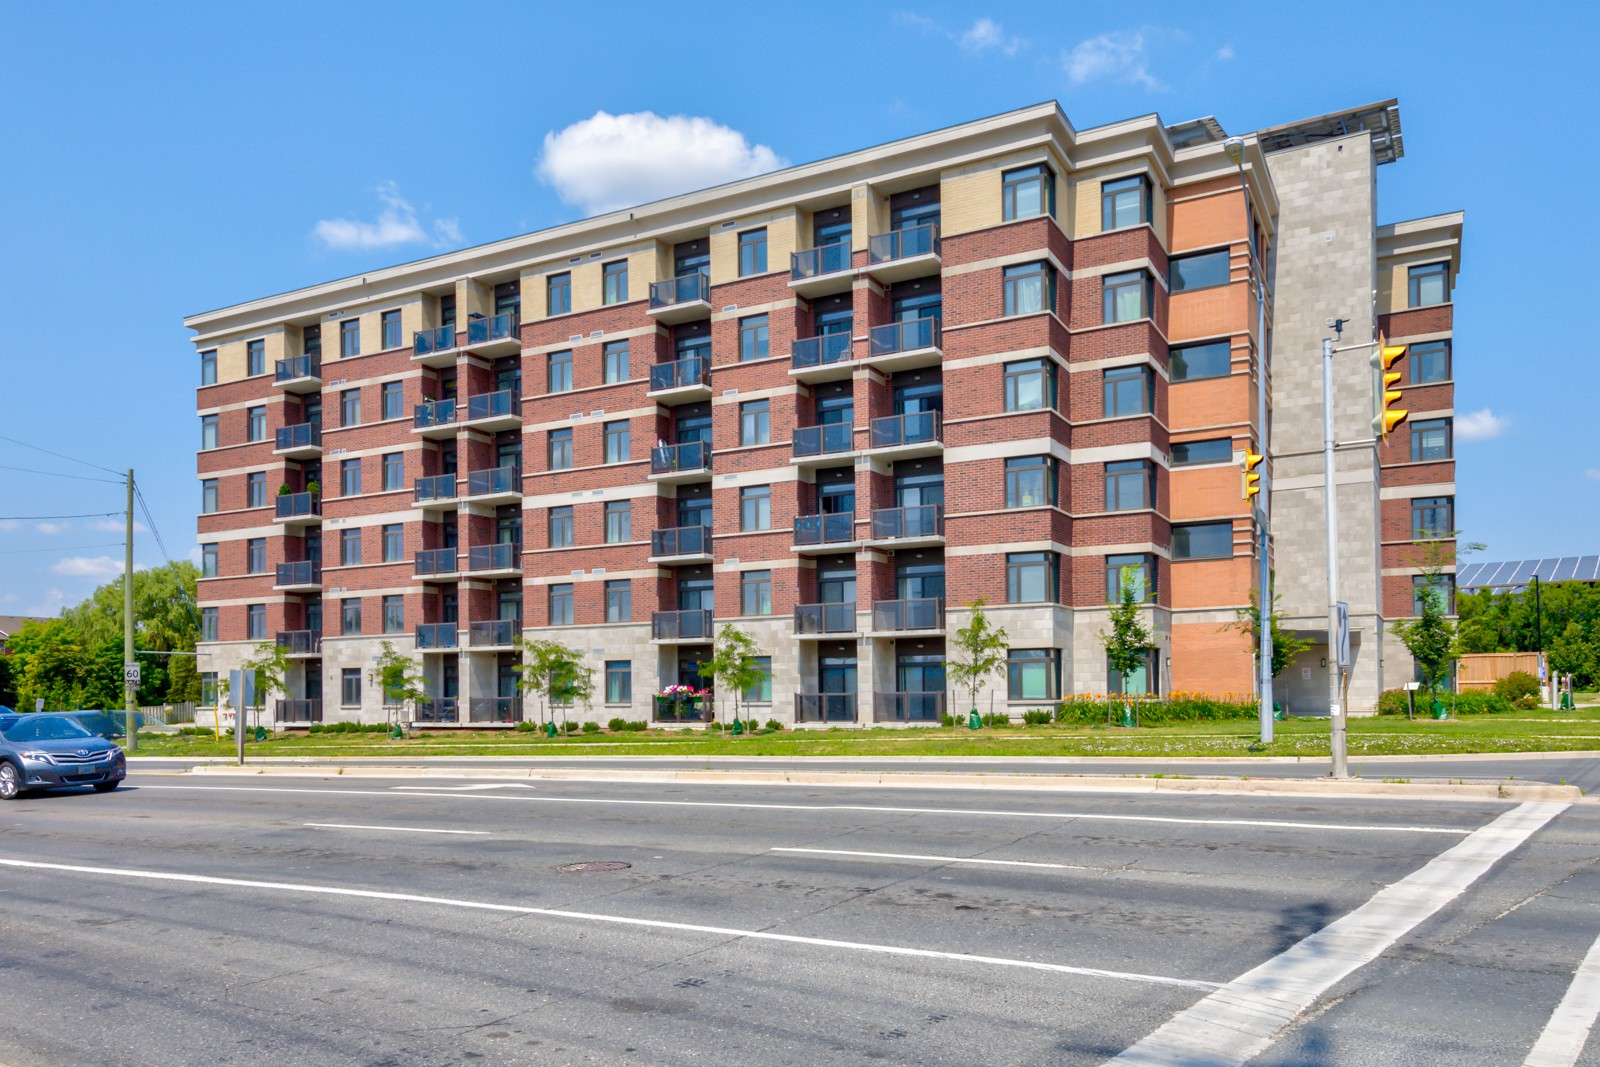 Greenlife Midtown Markham Condos at 7768 Kennedy Rd, Markham 1